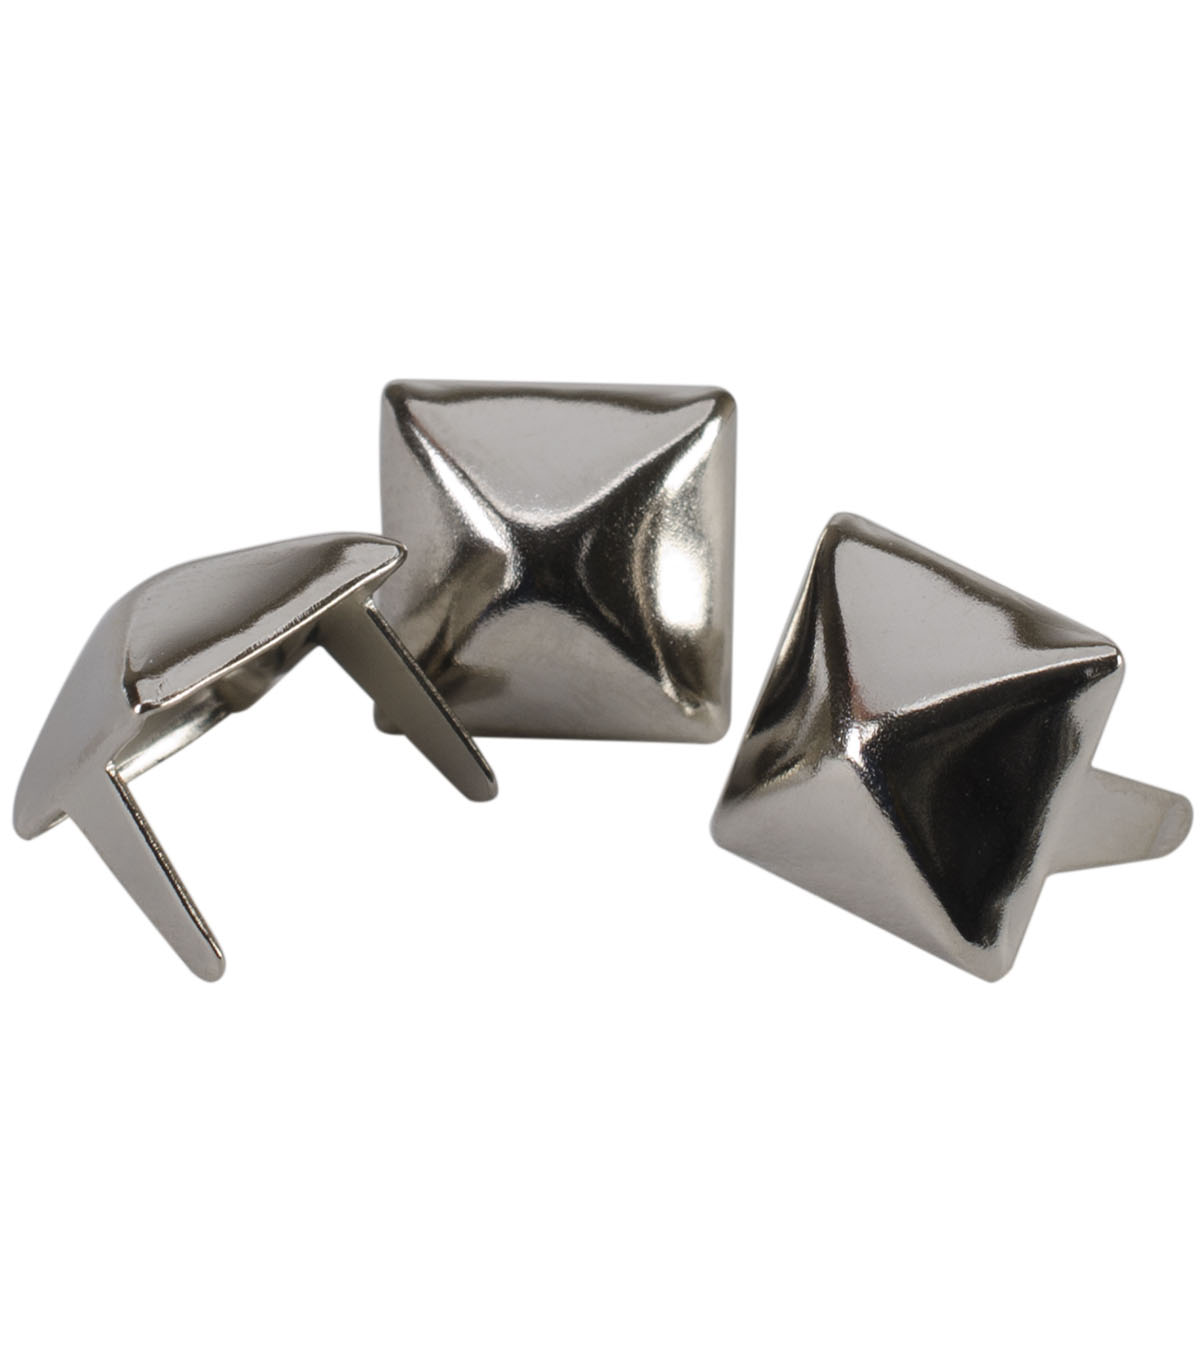 Antique Nickel Plated Pyramid Spots